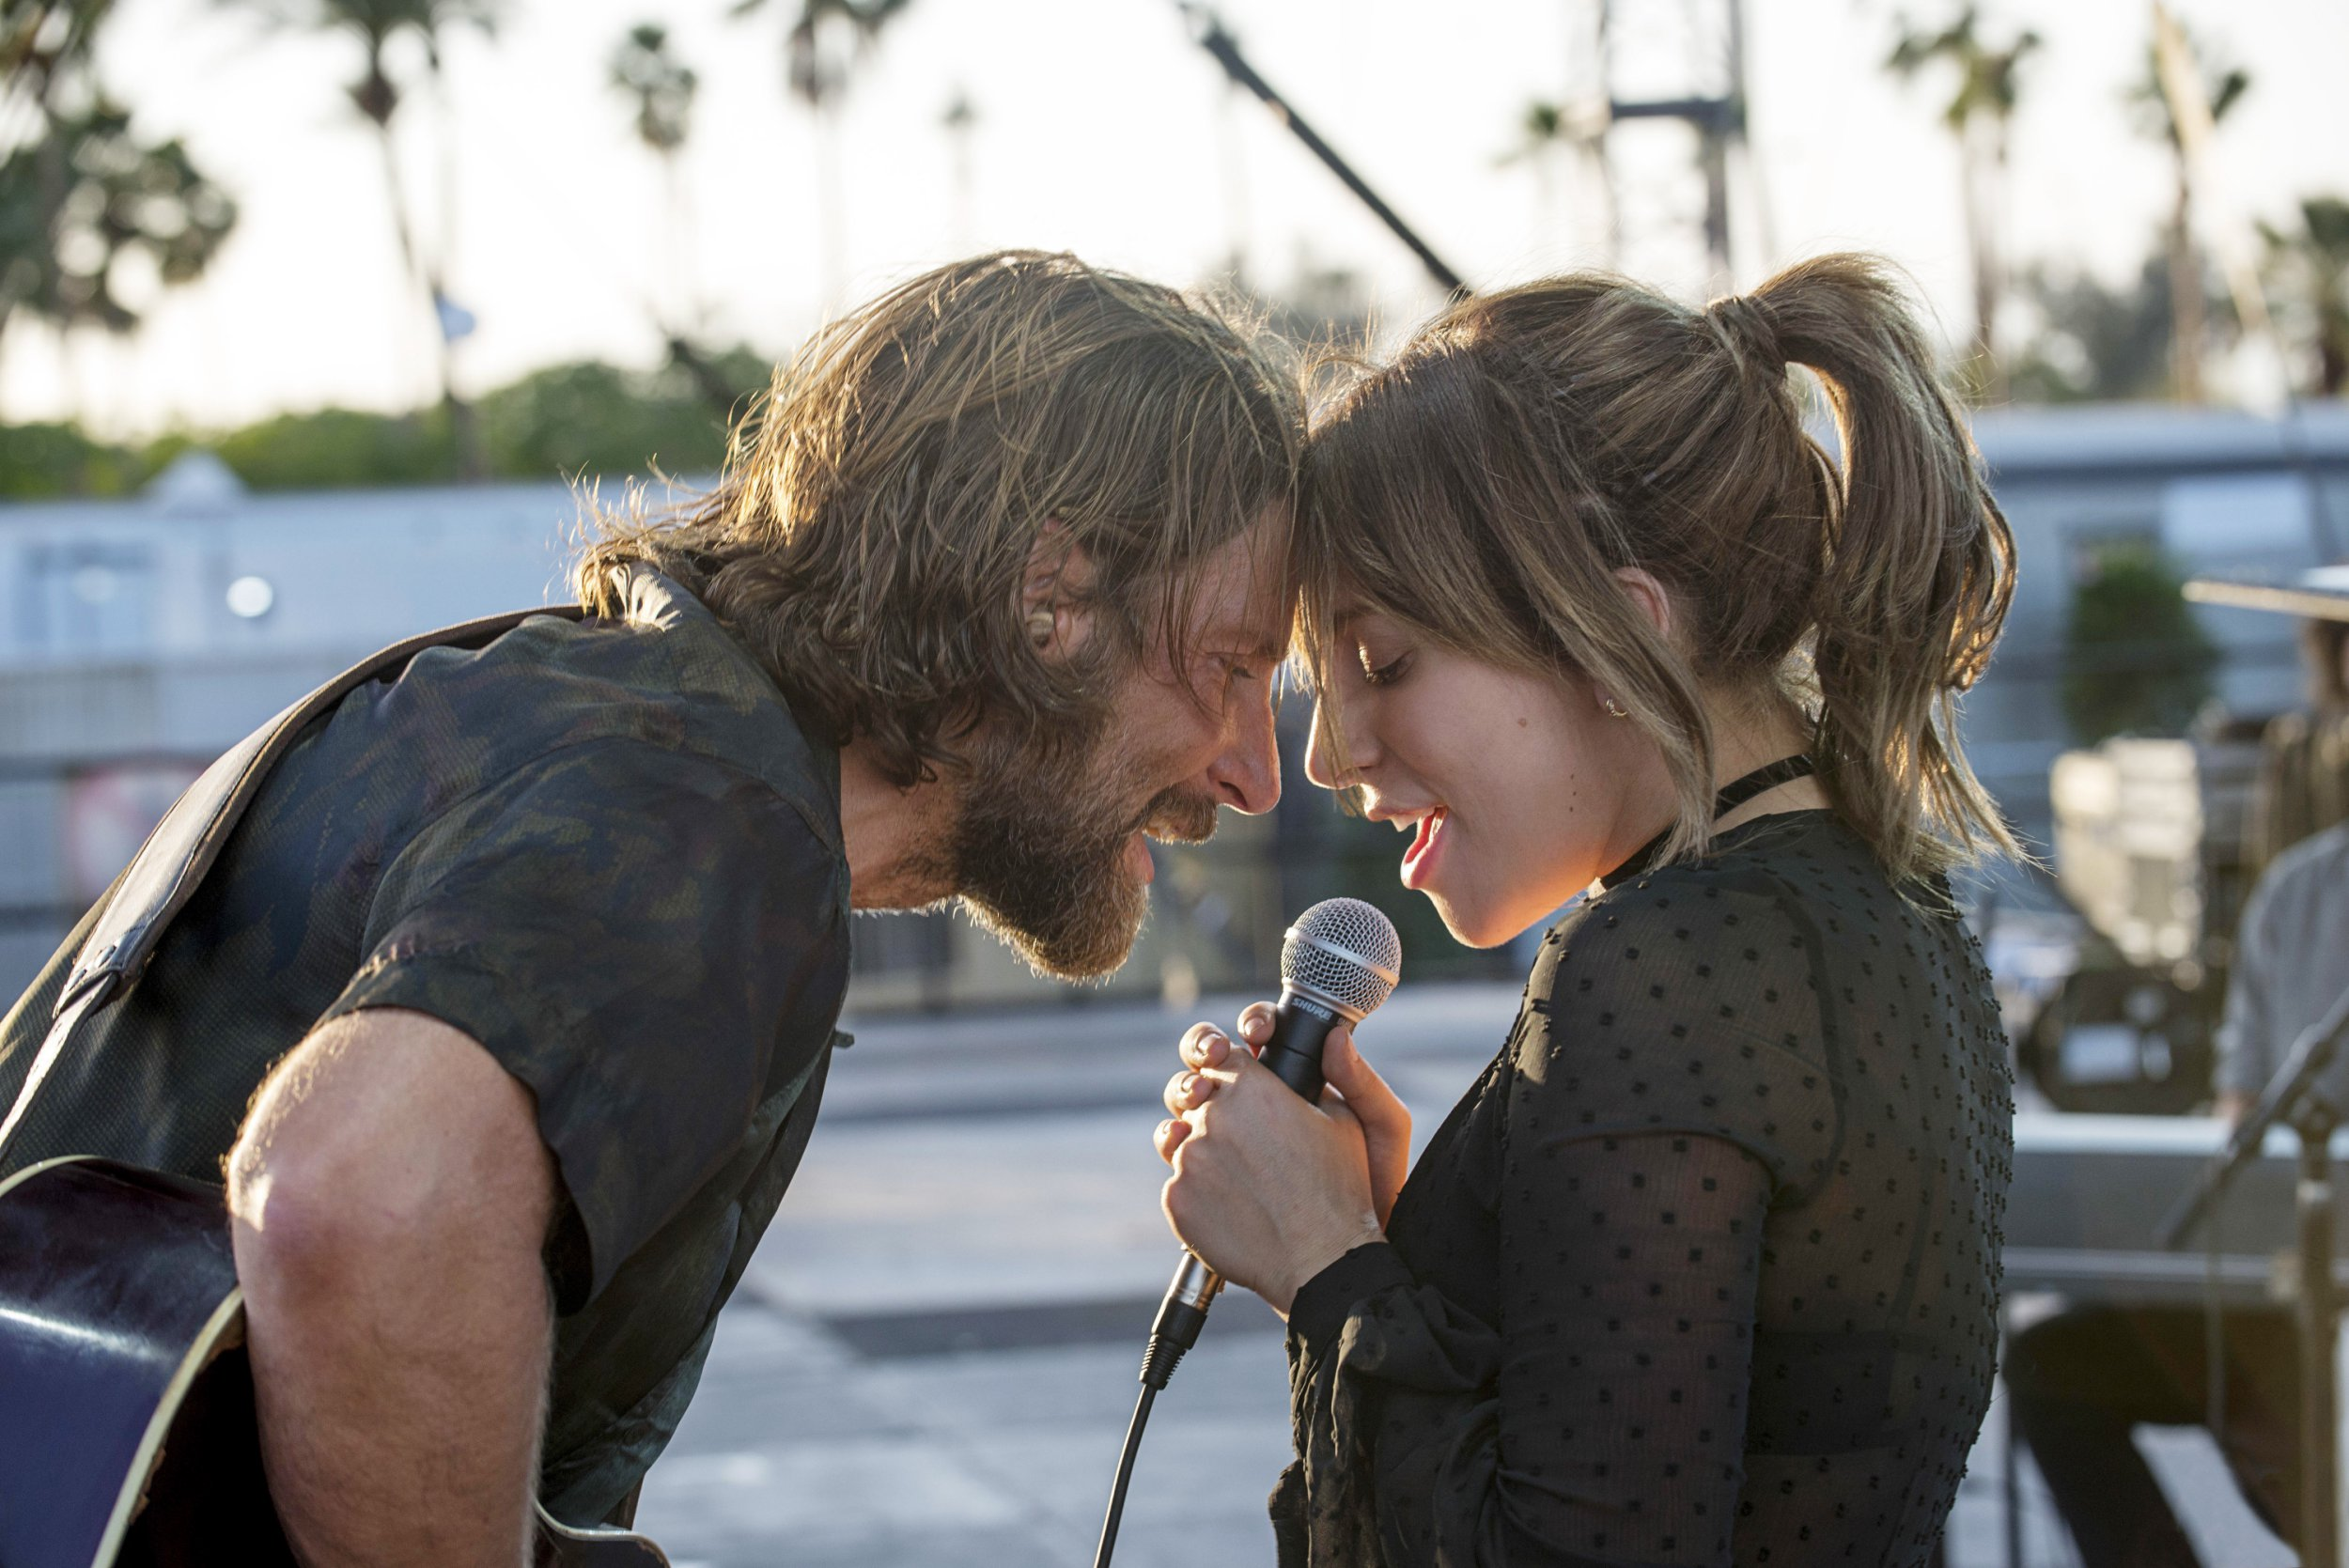 Who wrote Shallow for A Star Is Born and what are the lyrics?